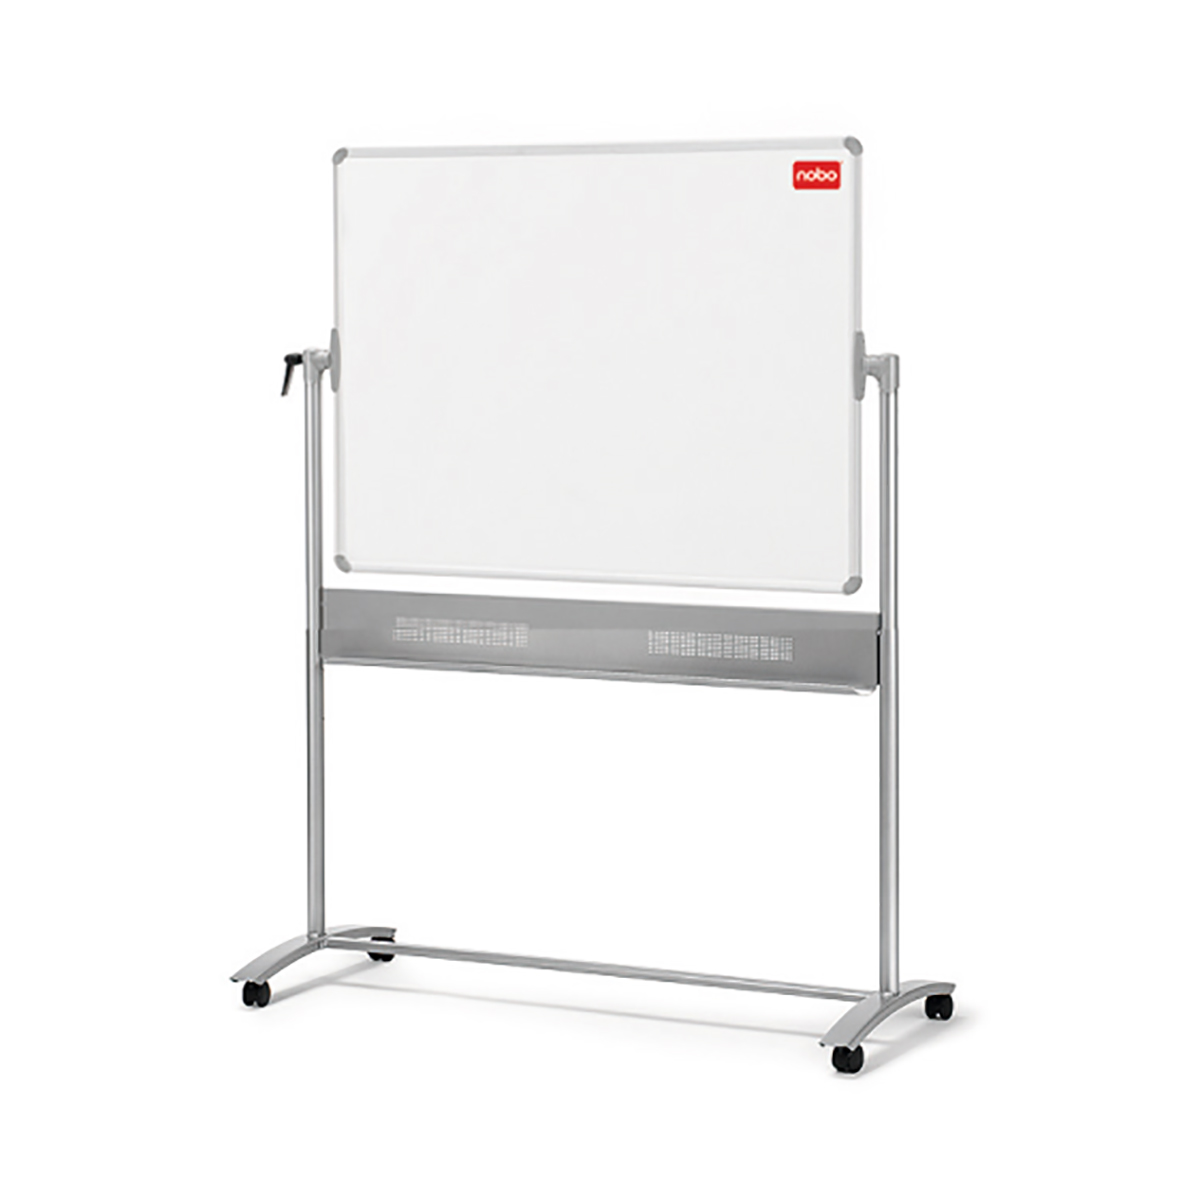 Nobo 1901031 Dual Sided Mobile Whiteboard 1500x1200mm